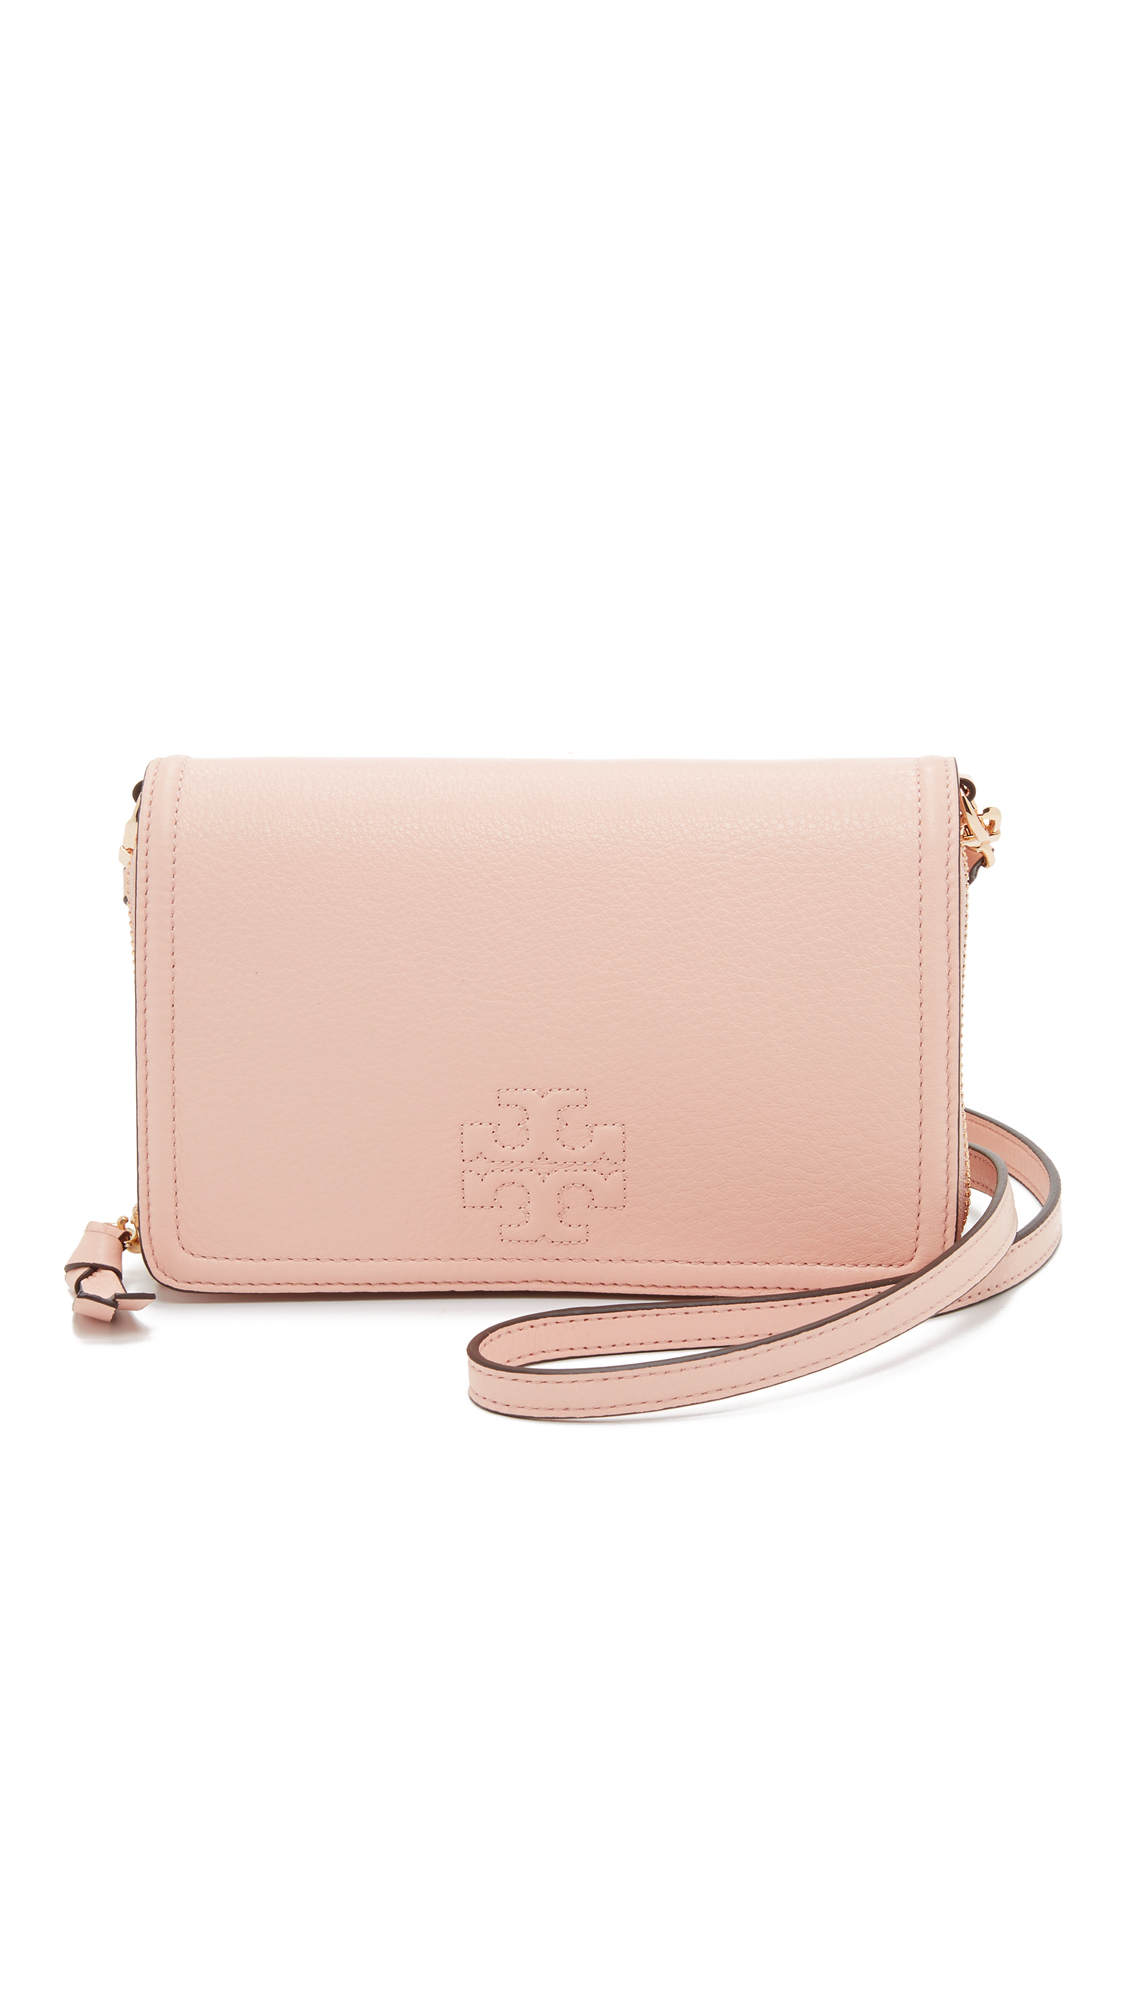 6db1eb9d0a7 Tory Burch Thea Flat Wallet Cross Body Bag in Pink - Lyst